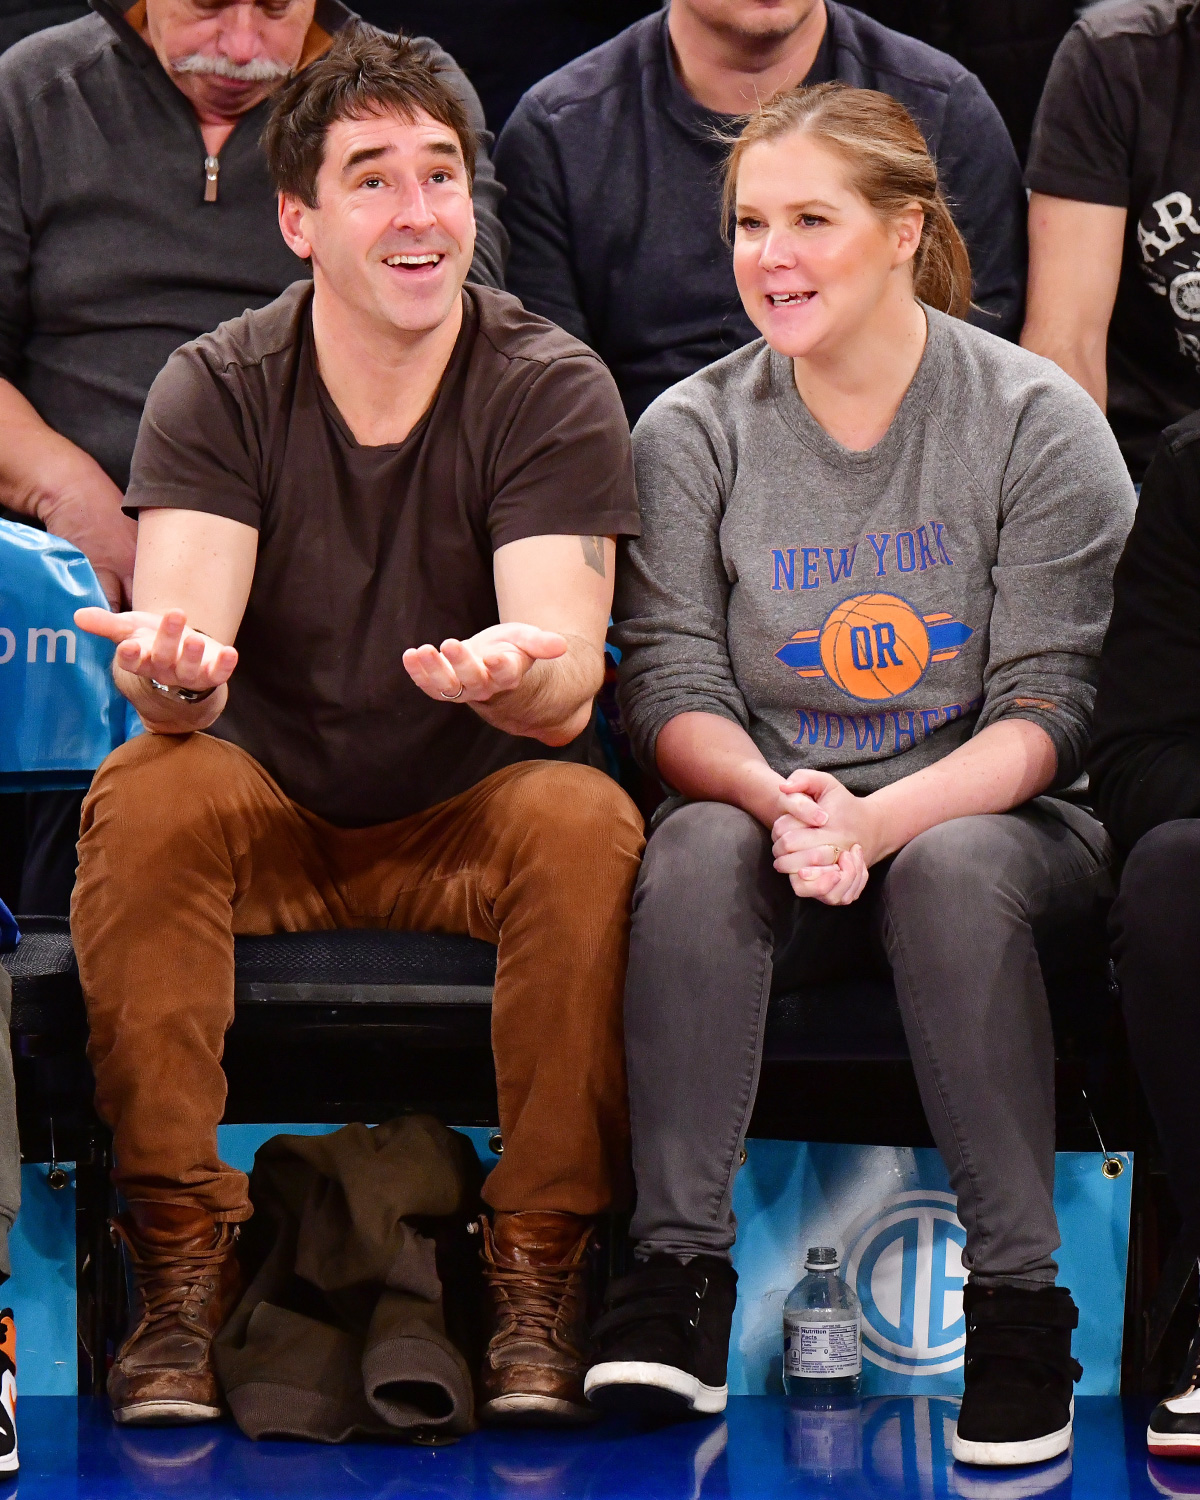 Chris Fischer and Amy Schumer attend Washington Wizards v New York Knicks game at Madison Square Garden on December 23, 2019 in New York City